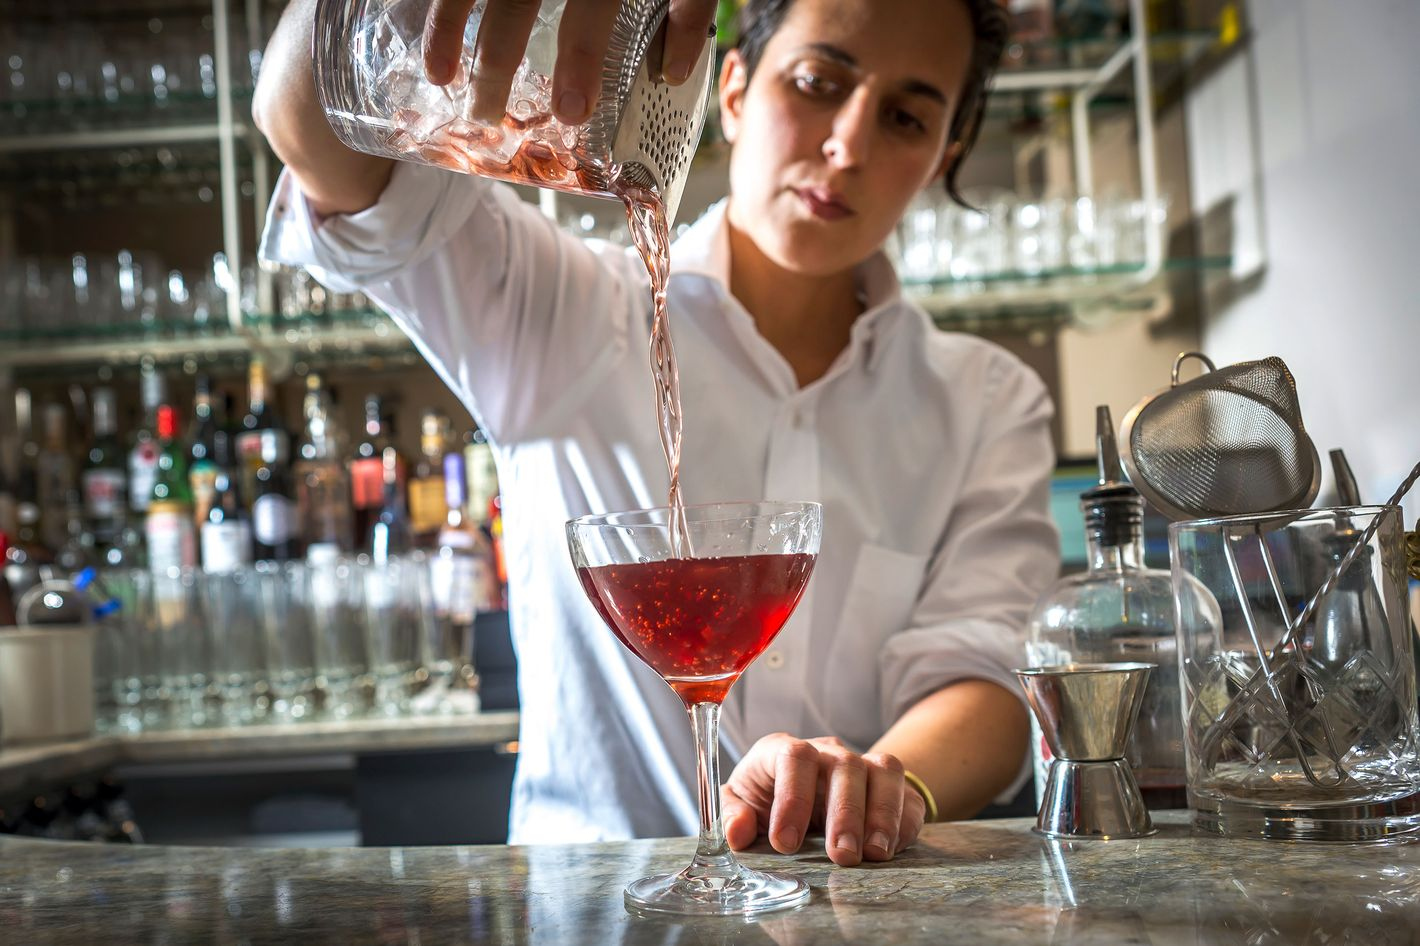 Bartender Soraya Odishoo making the Oakland cocktail, which includes smoked red wine, bitters, and golden rum.